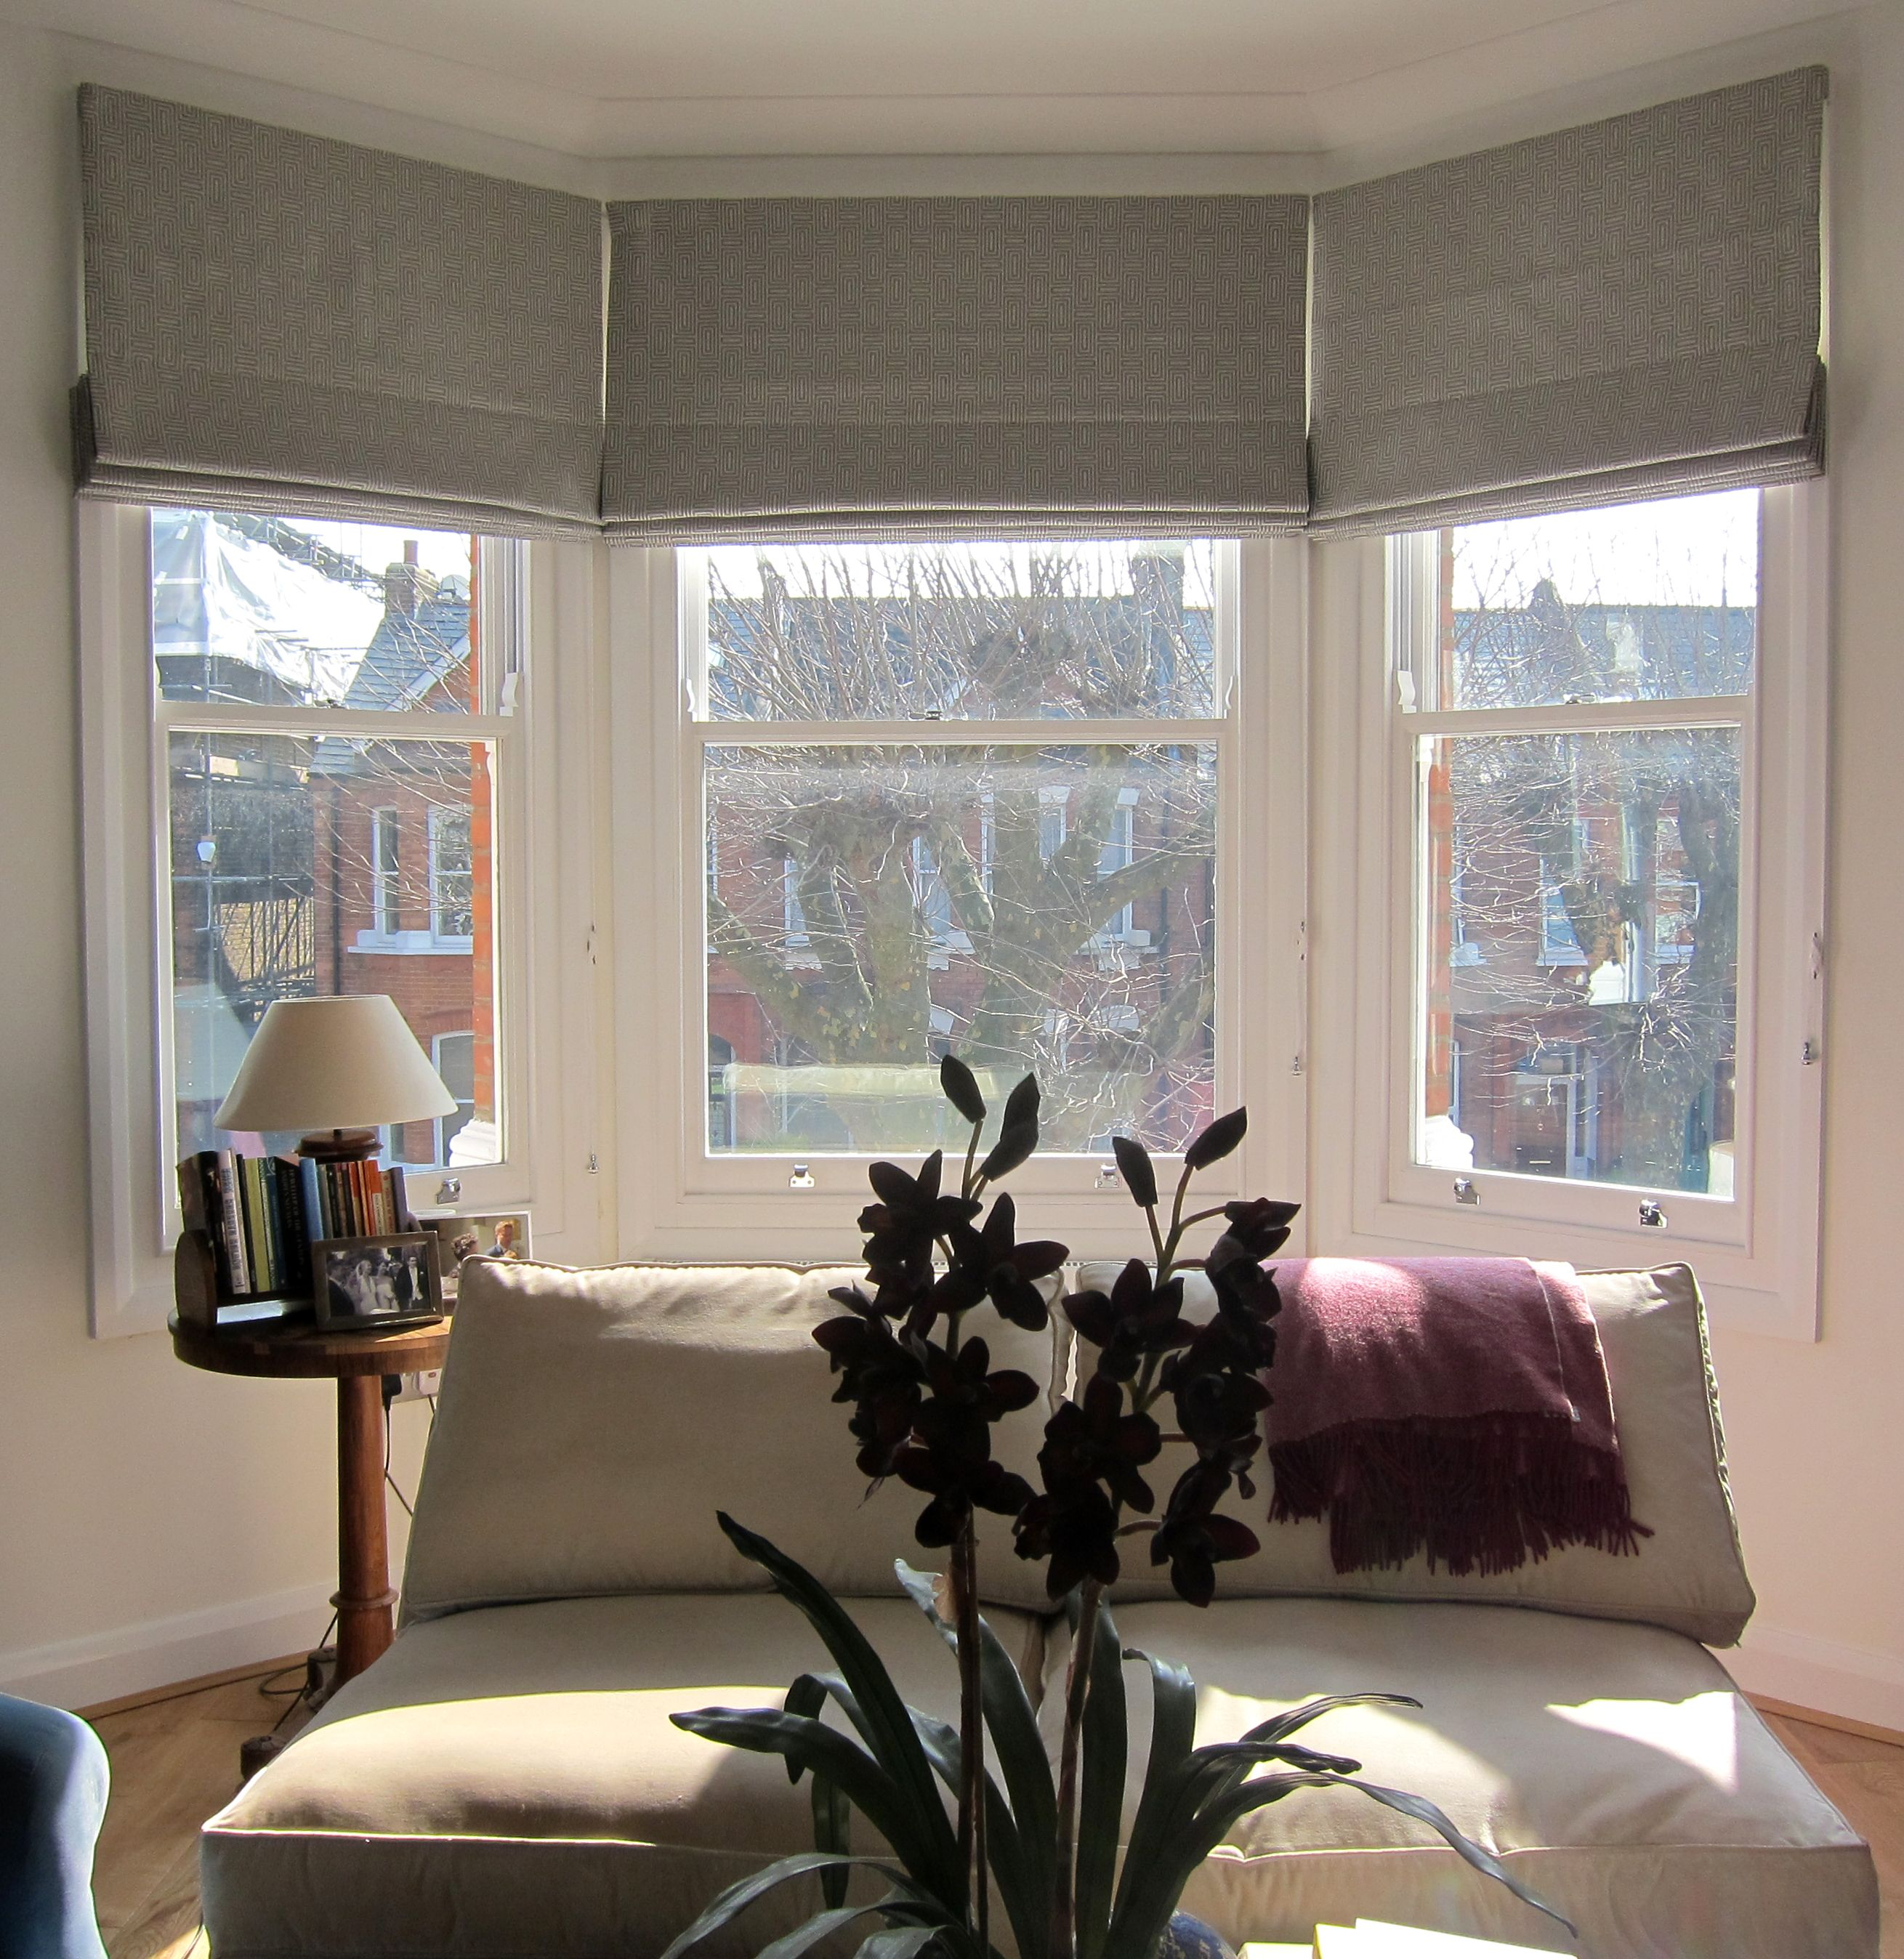 Window treatments for bay windows in bedrooms - Geometric Patterned Roman Blinds In A Bay Window Could Work In The Bedroom Bay Window